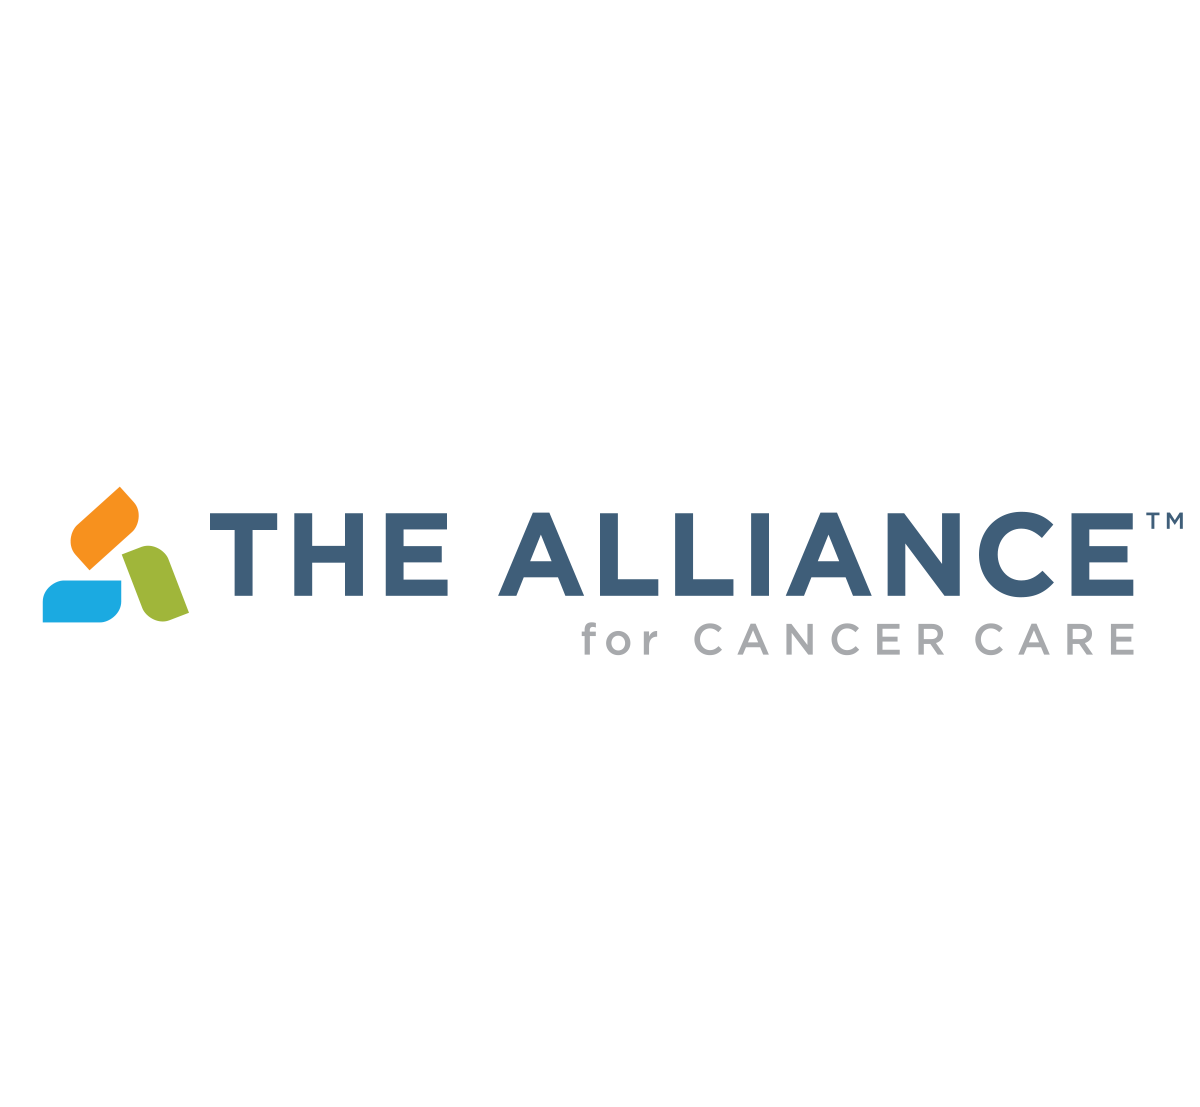 The Alliance for Cancer Care